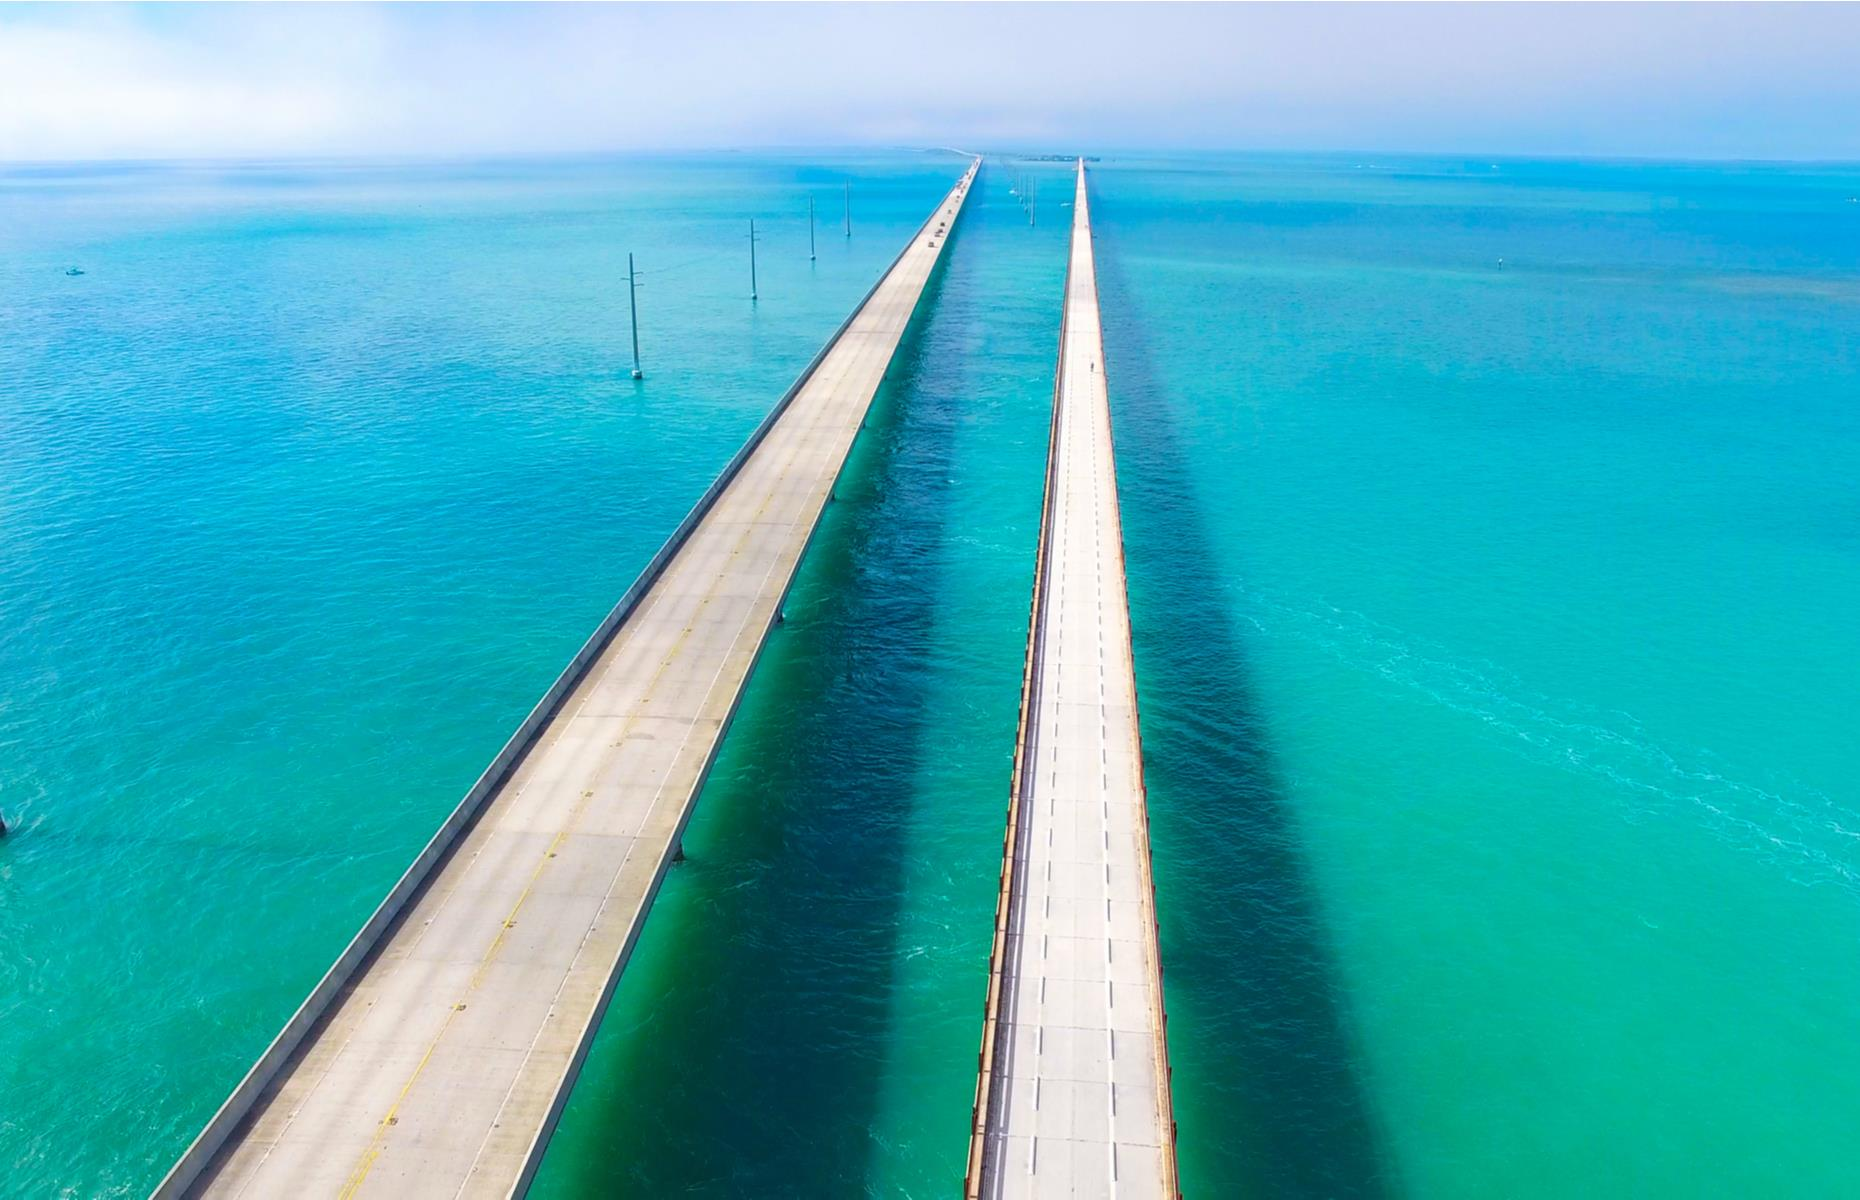 Slide 11 of 52: Jutting into an expanse of brilliant blue, this concrete bridge seems to stretch for hundreds of miles. But, as the name suggests, it continues for just under seven, joining up the idyllic Florida Keys. The landmark is actually two separate bridges. The older of the two, completed in 1912, is closed for lengthy repairs until 2021.